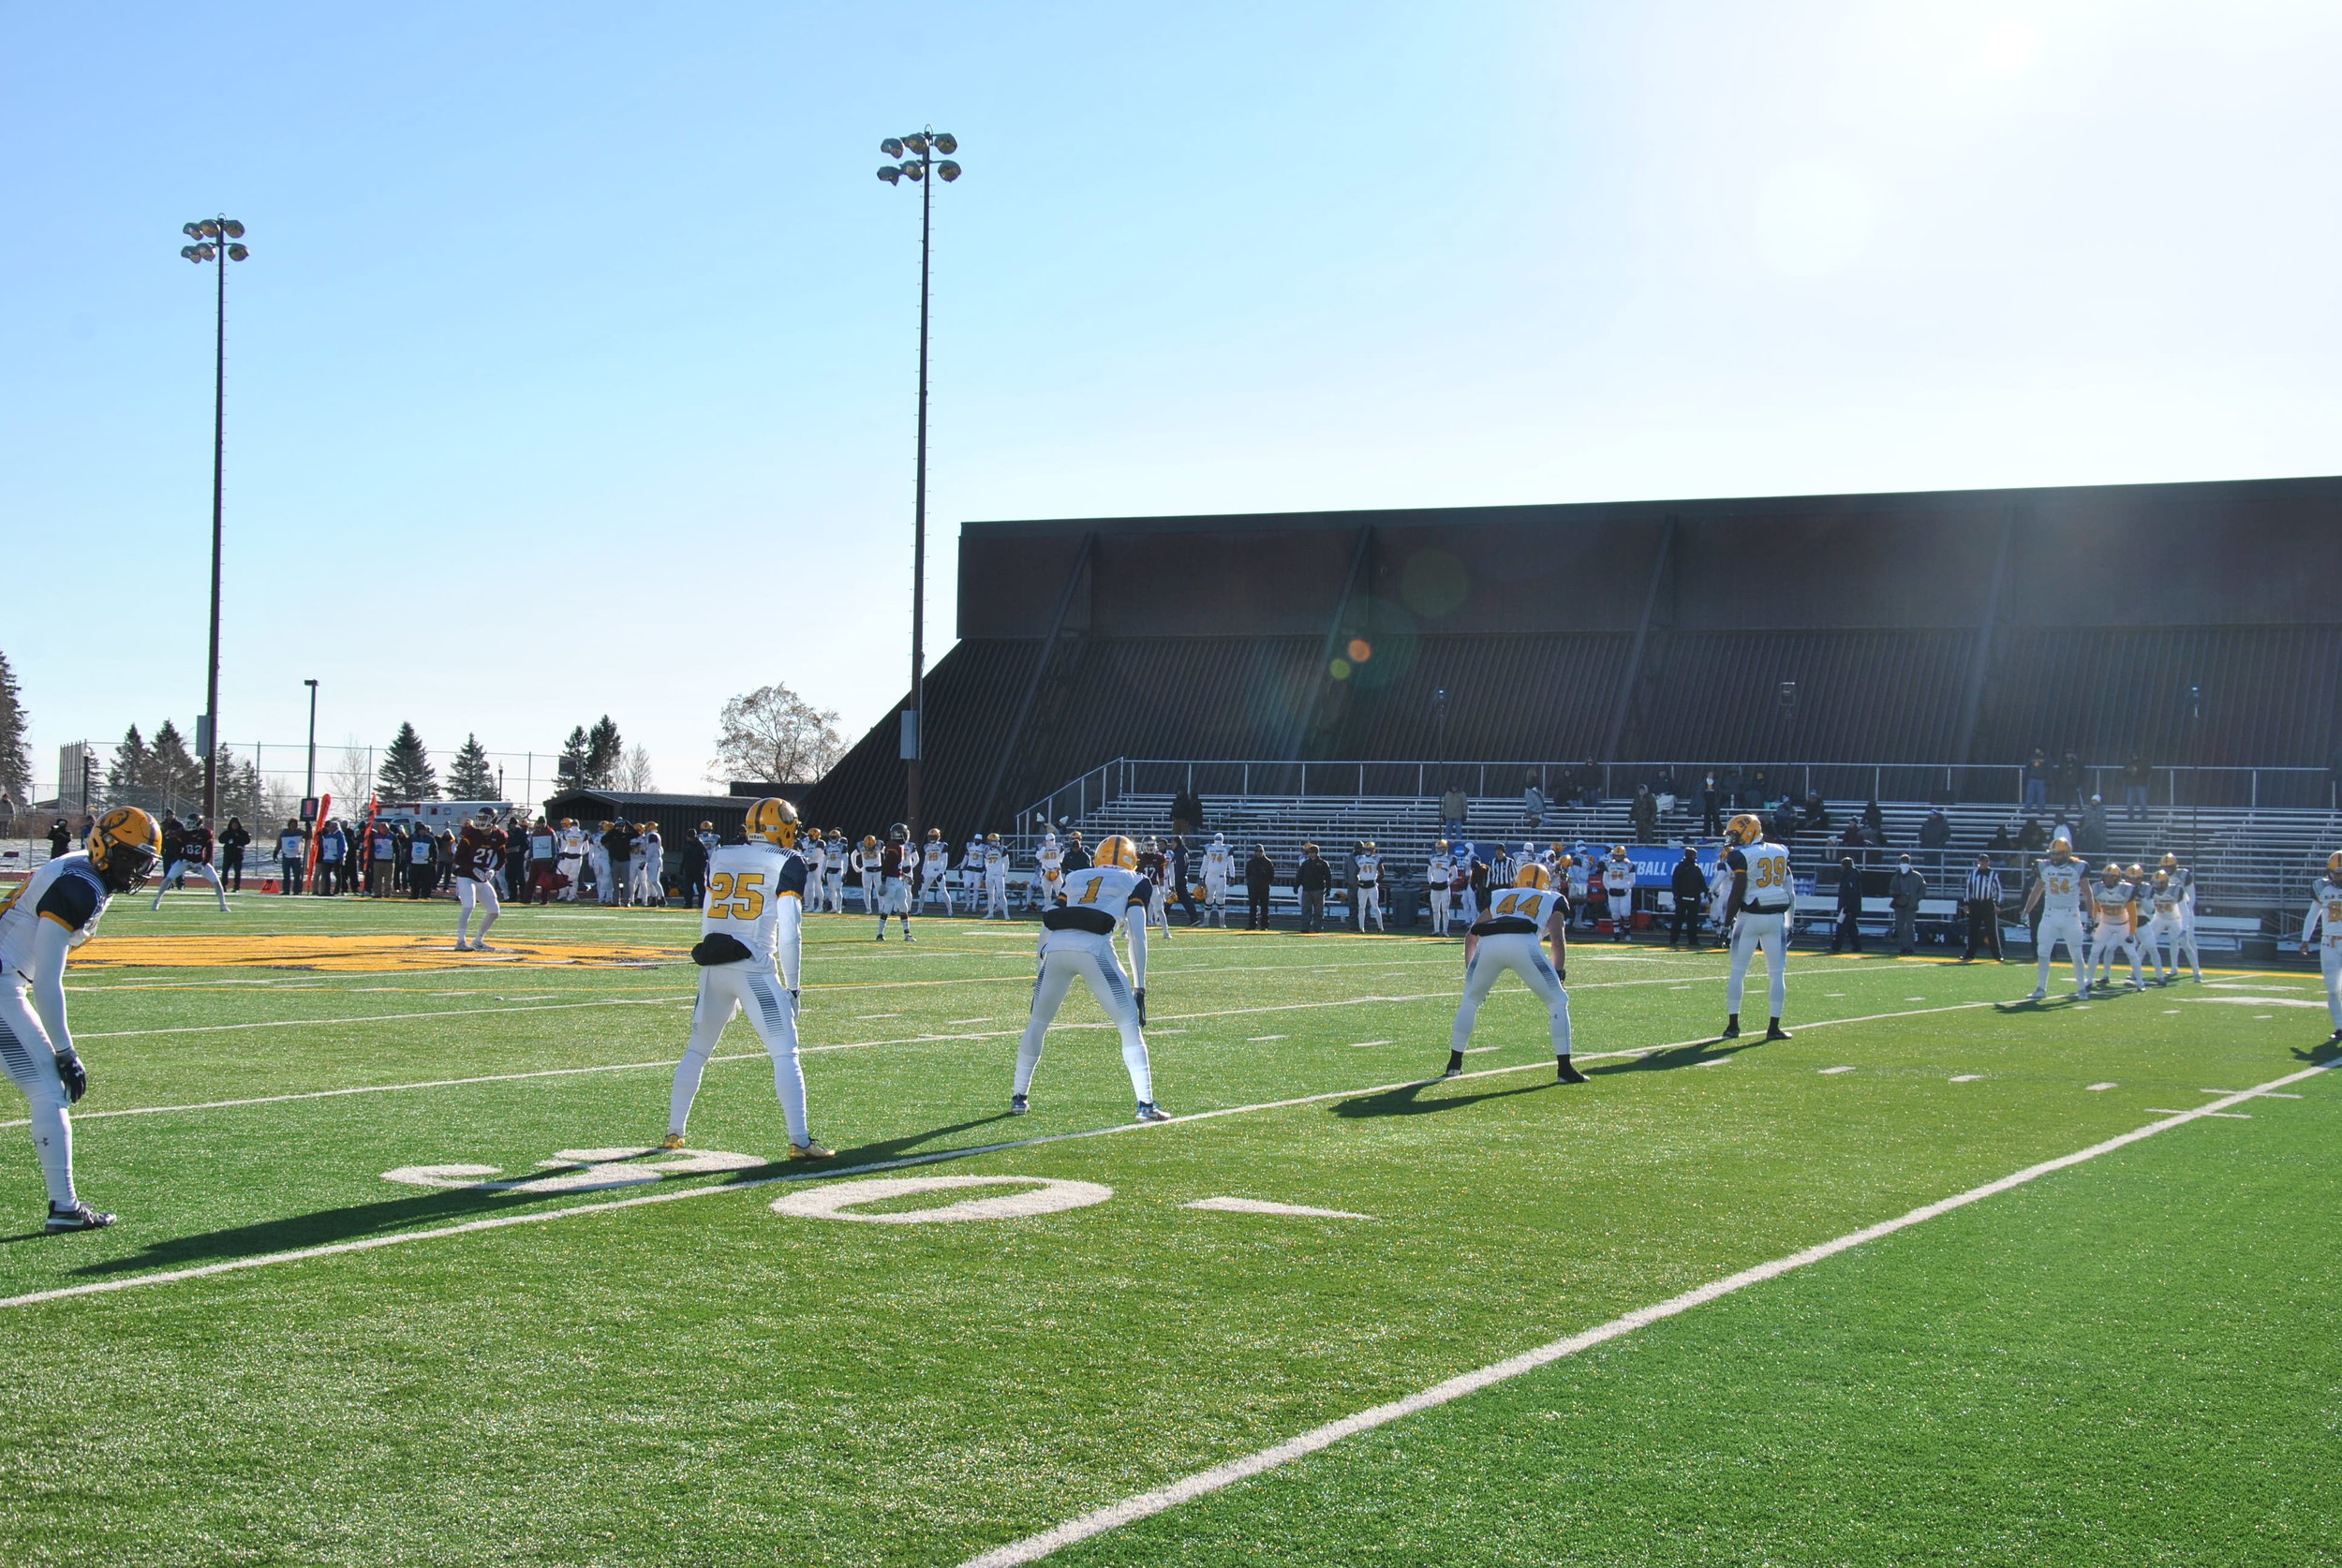 Texas A&M-Commerce lines up for the kickoff in the first quarter. Photo by Rebecca Kottke